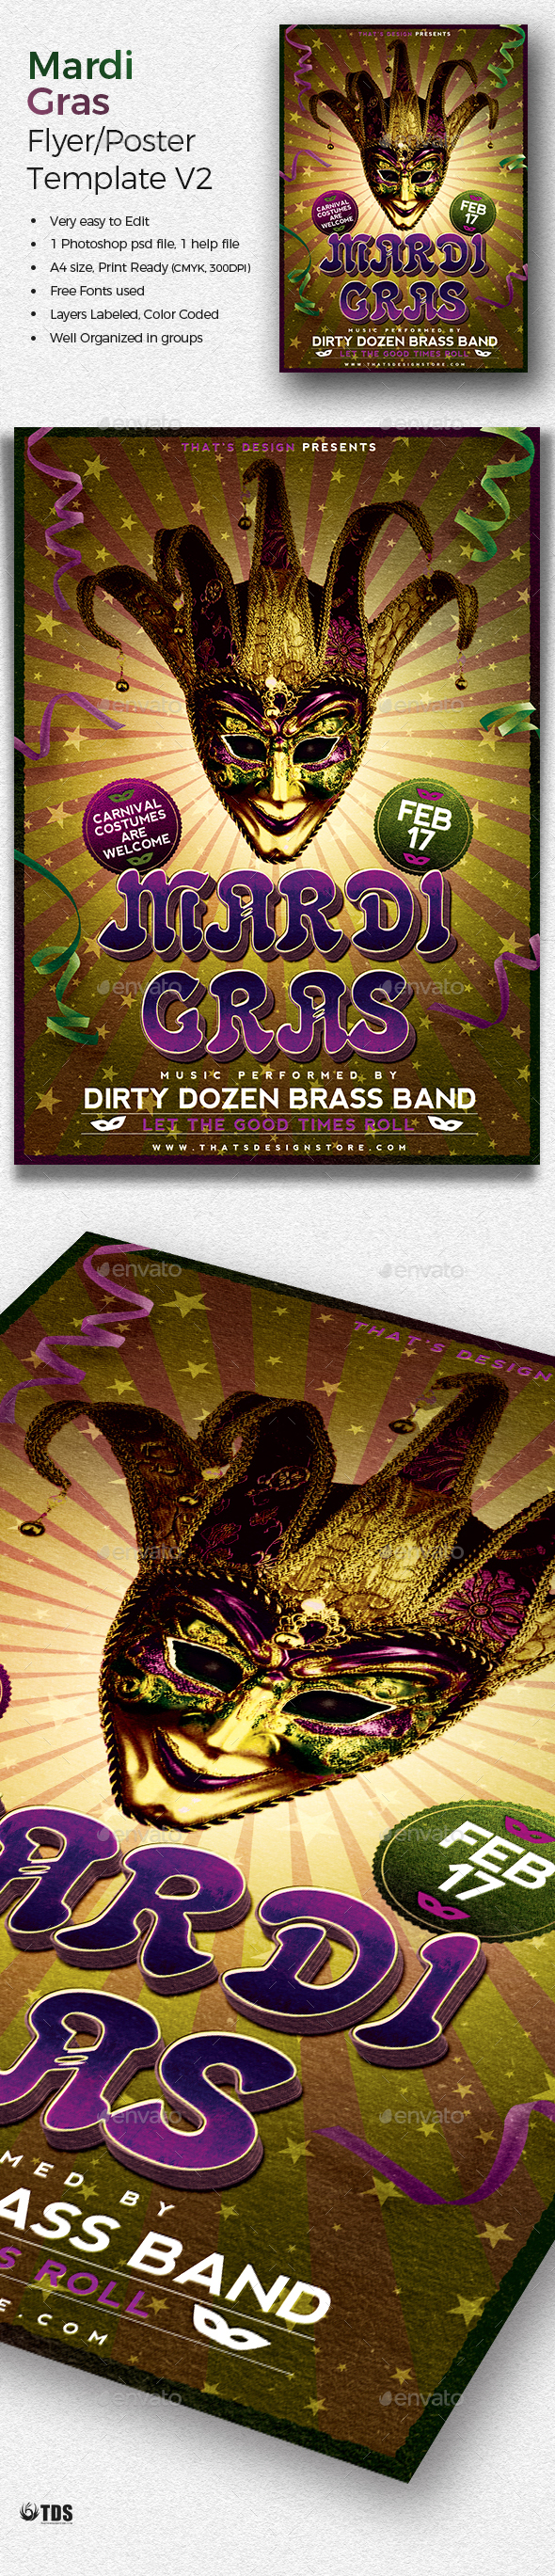 Mardi Gras Flyer Template V2 - Holidays Events